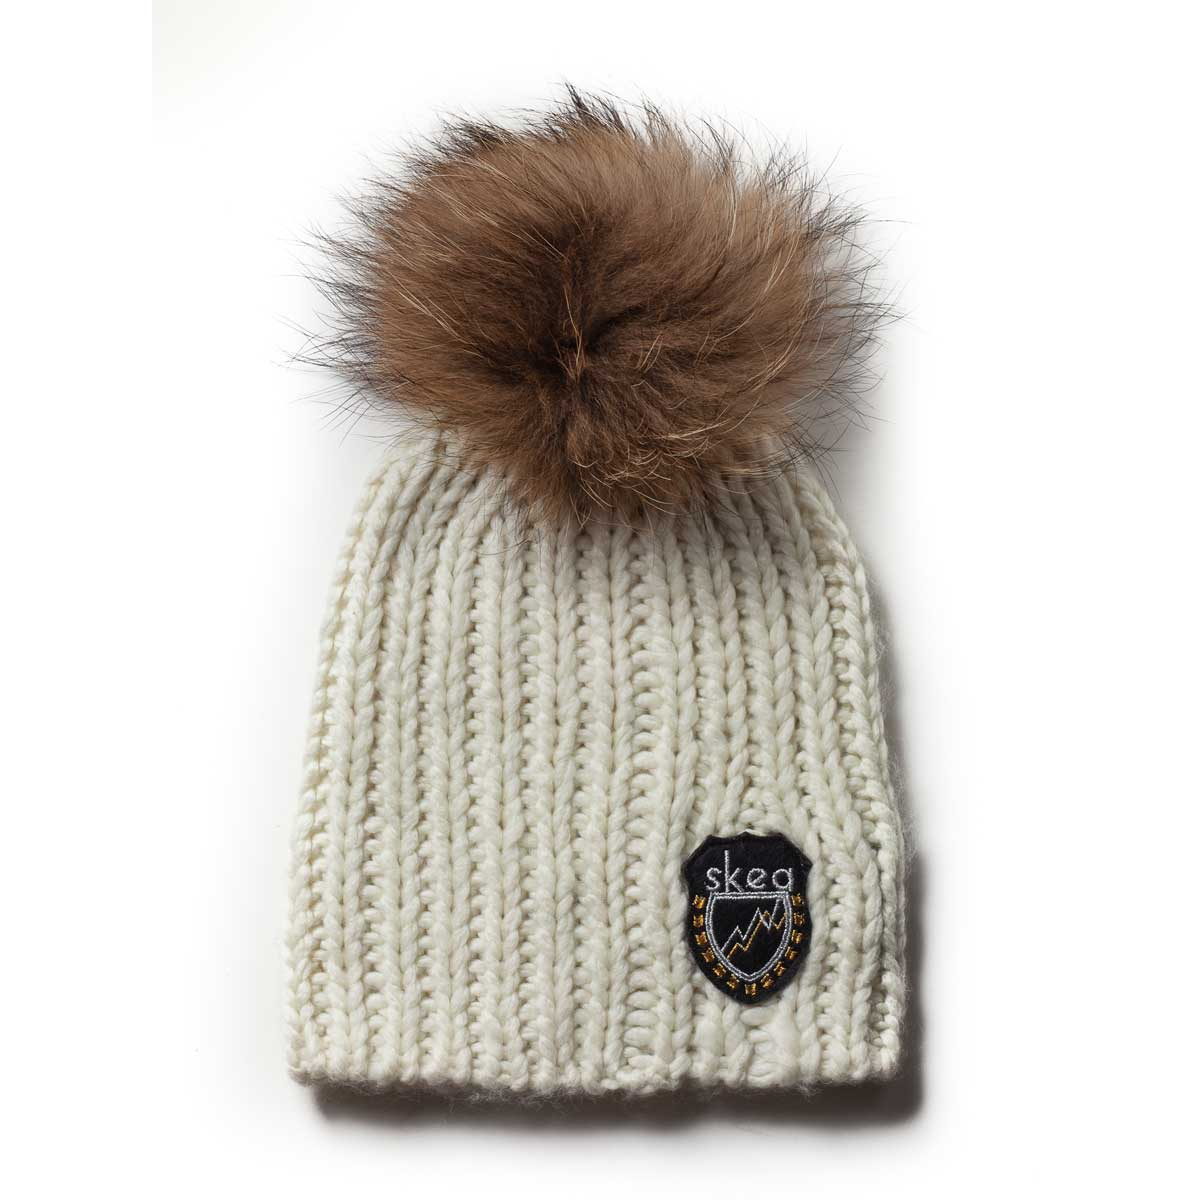 Skea Women's Beets Knit Hat with Fur Pom in Ivory and Finn Pom